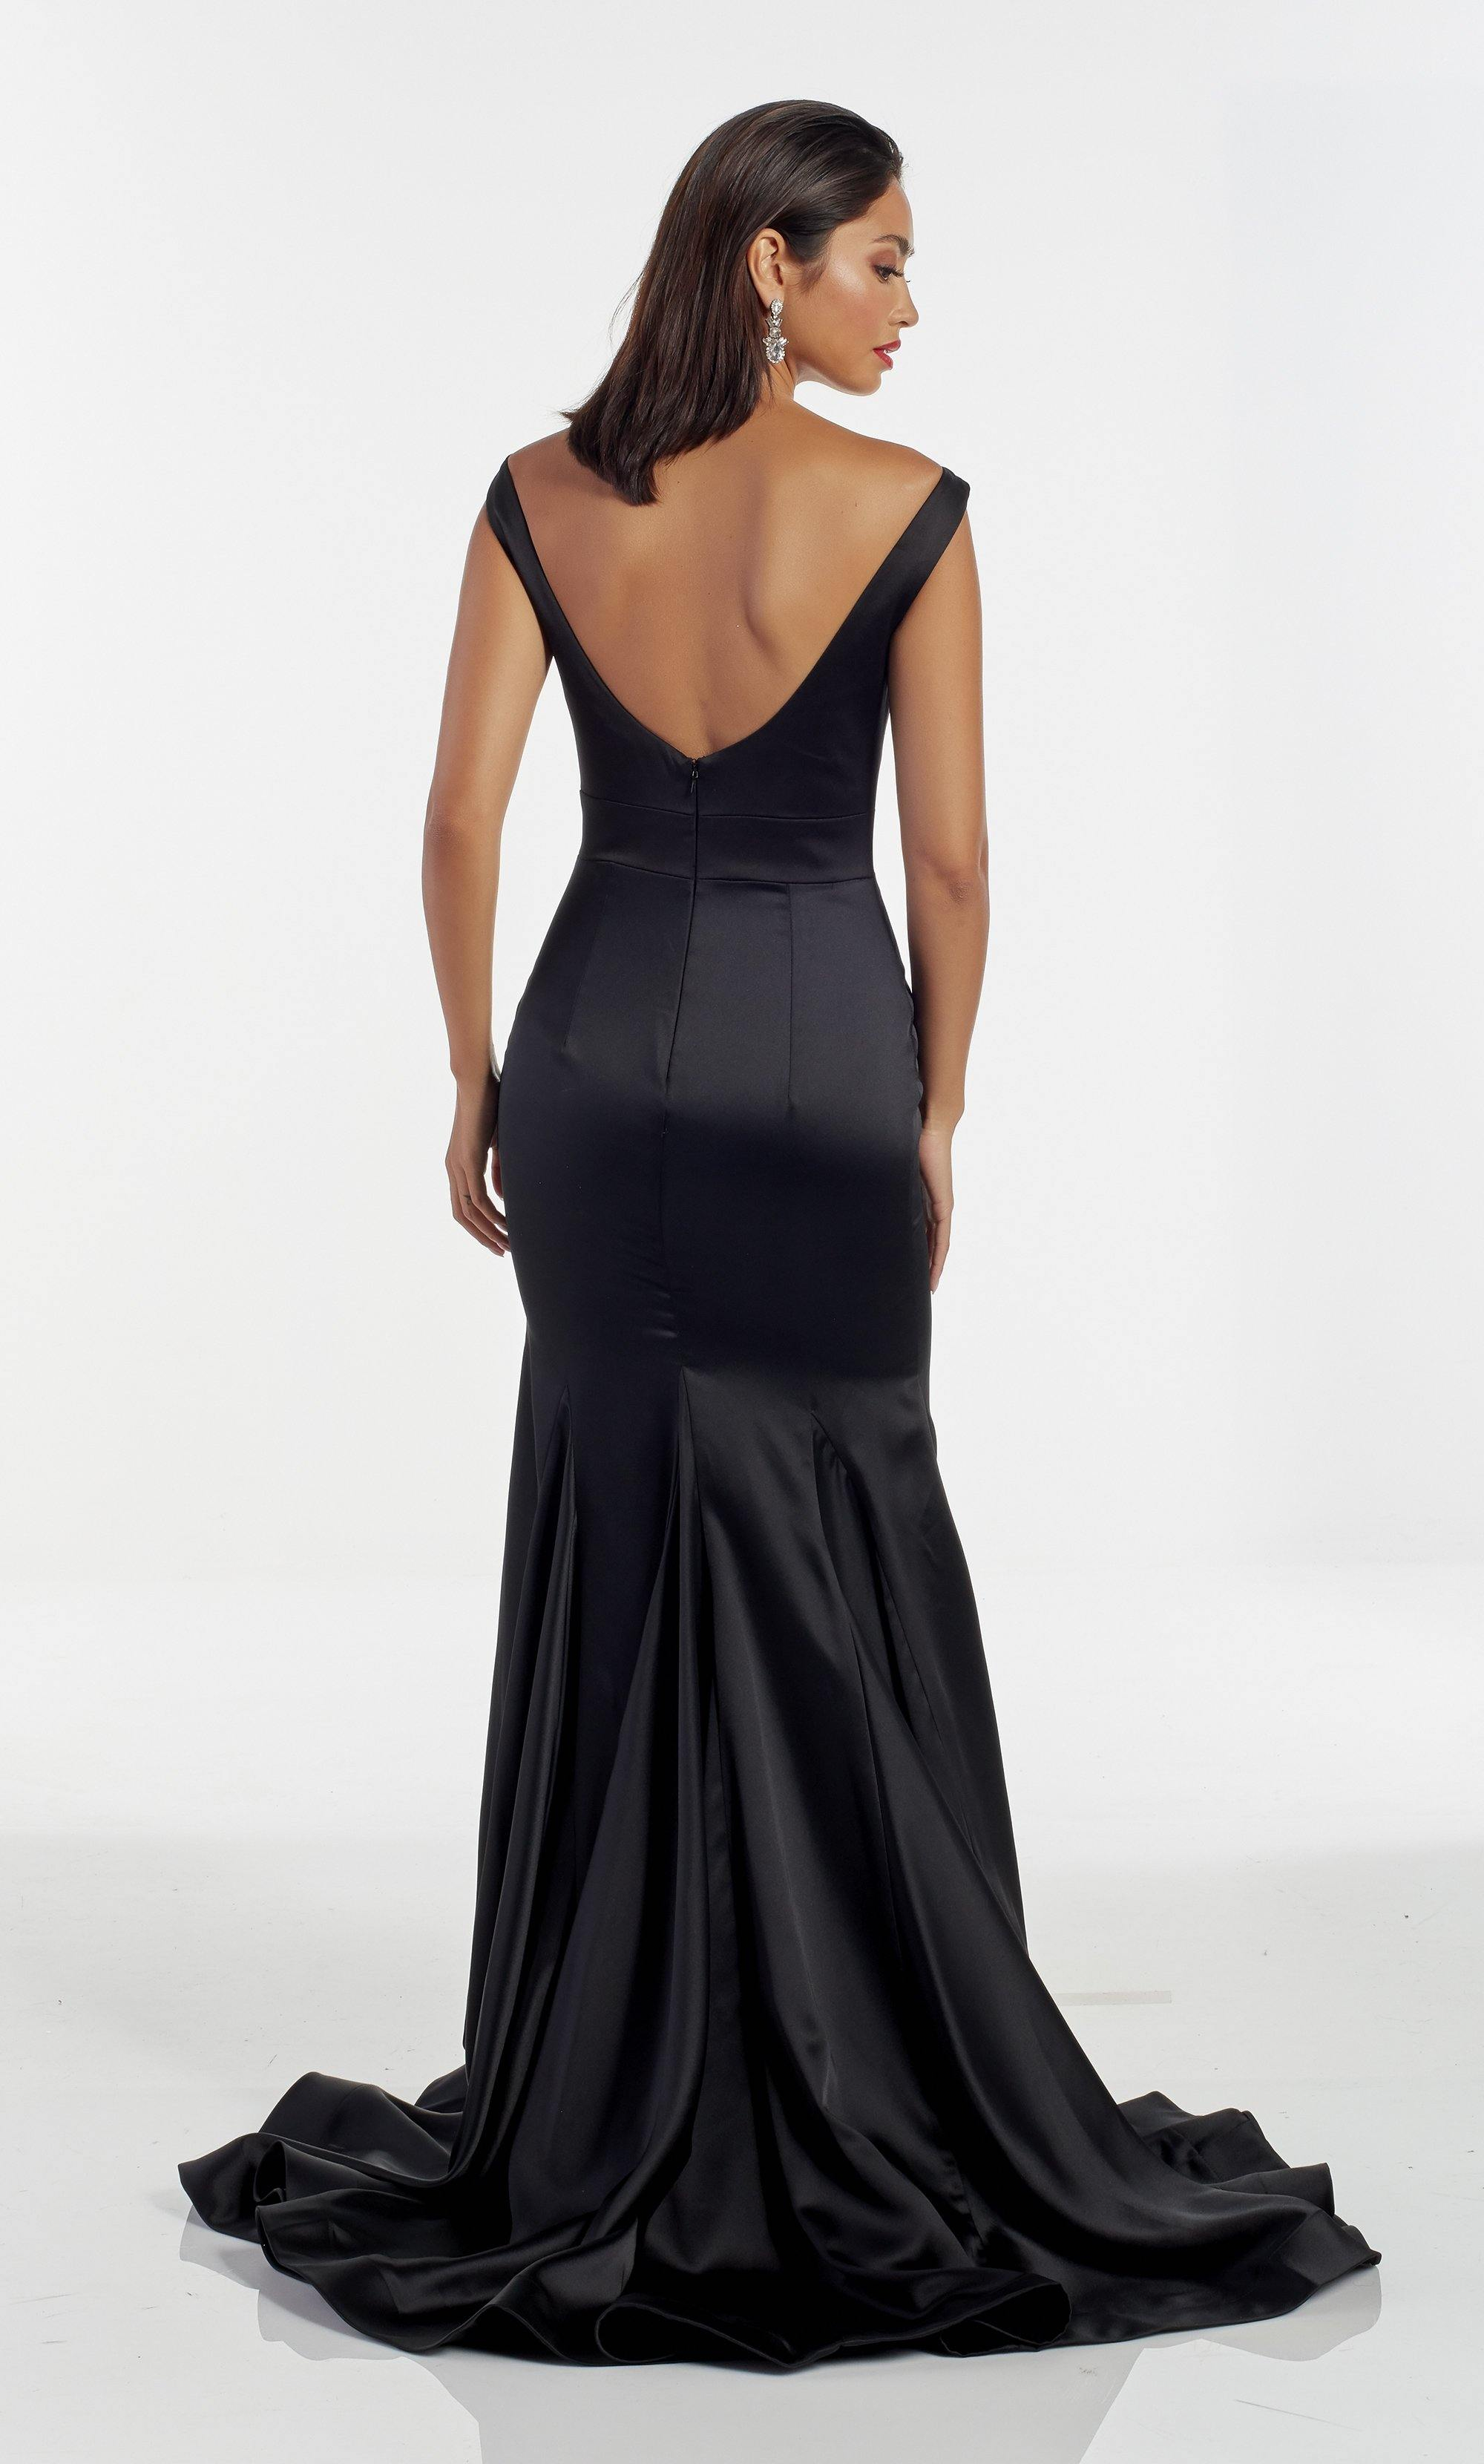 Sexy Black satin red carpet dress with a bateau neckline and beaded waist detail